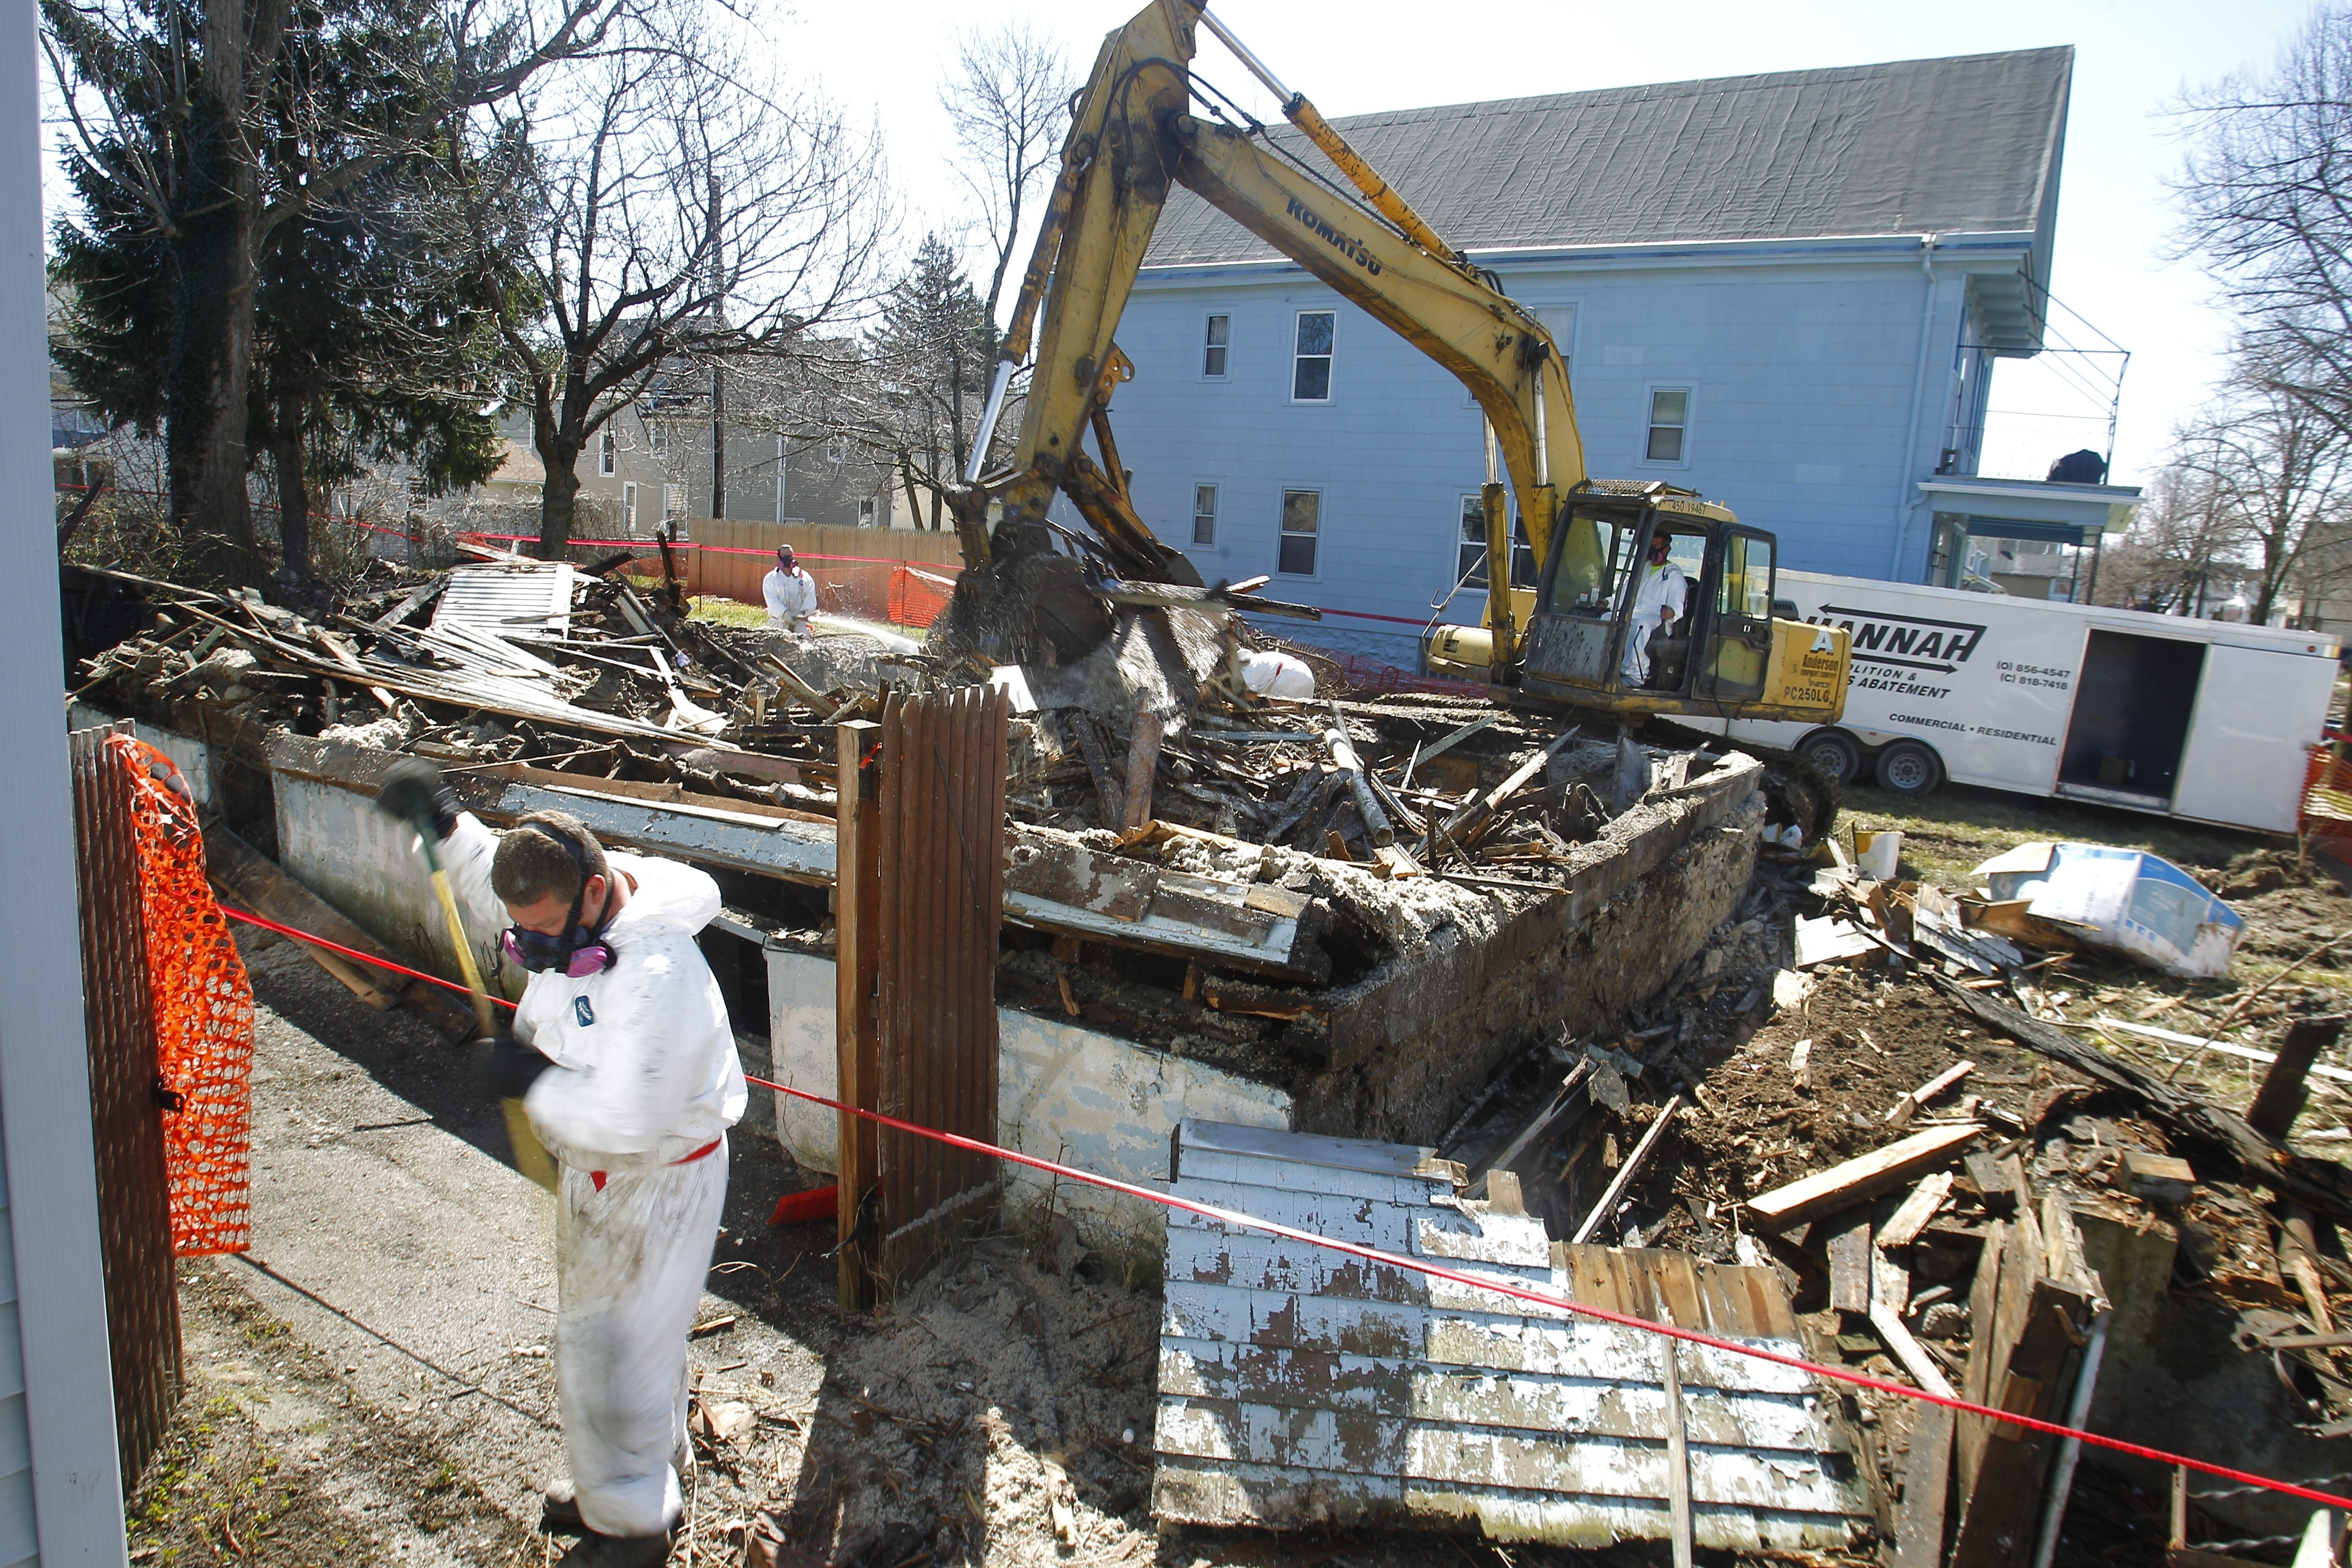 A crew from Hannah Demolition takes down a home on Waverly Street in Buffalo on Wednesday as part of the city's Clean Sweep program.